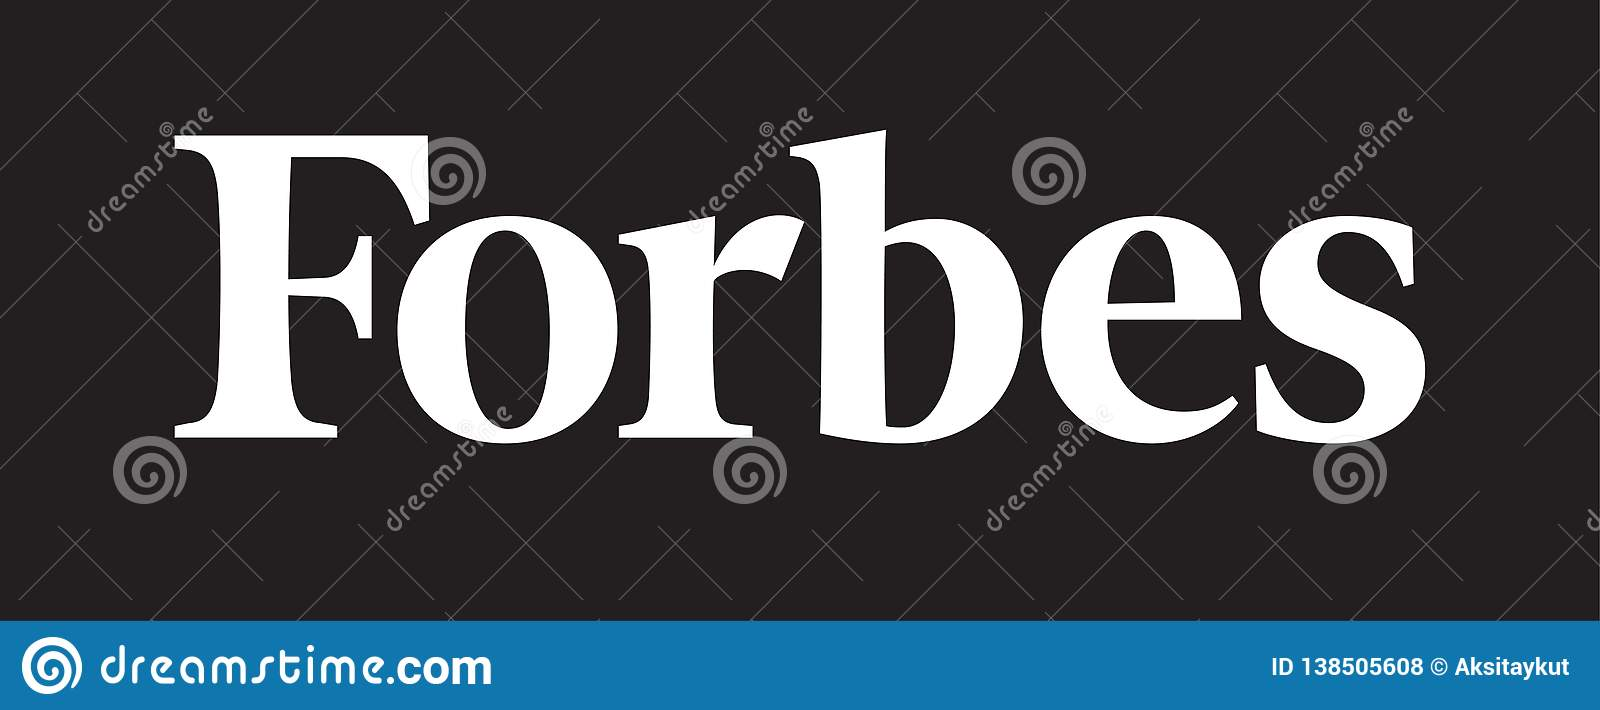 Forbes logo news editorial stock photo  Illustration of founded